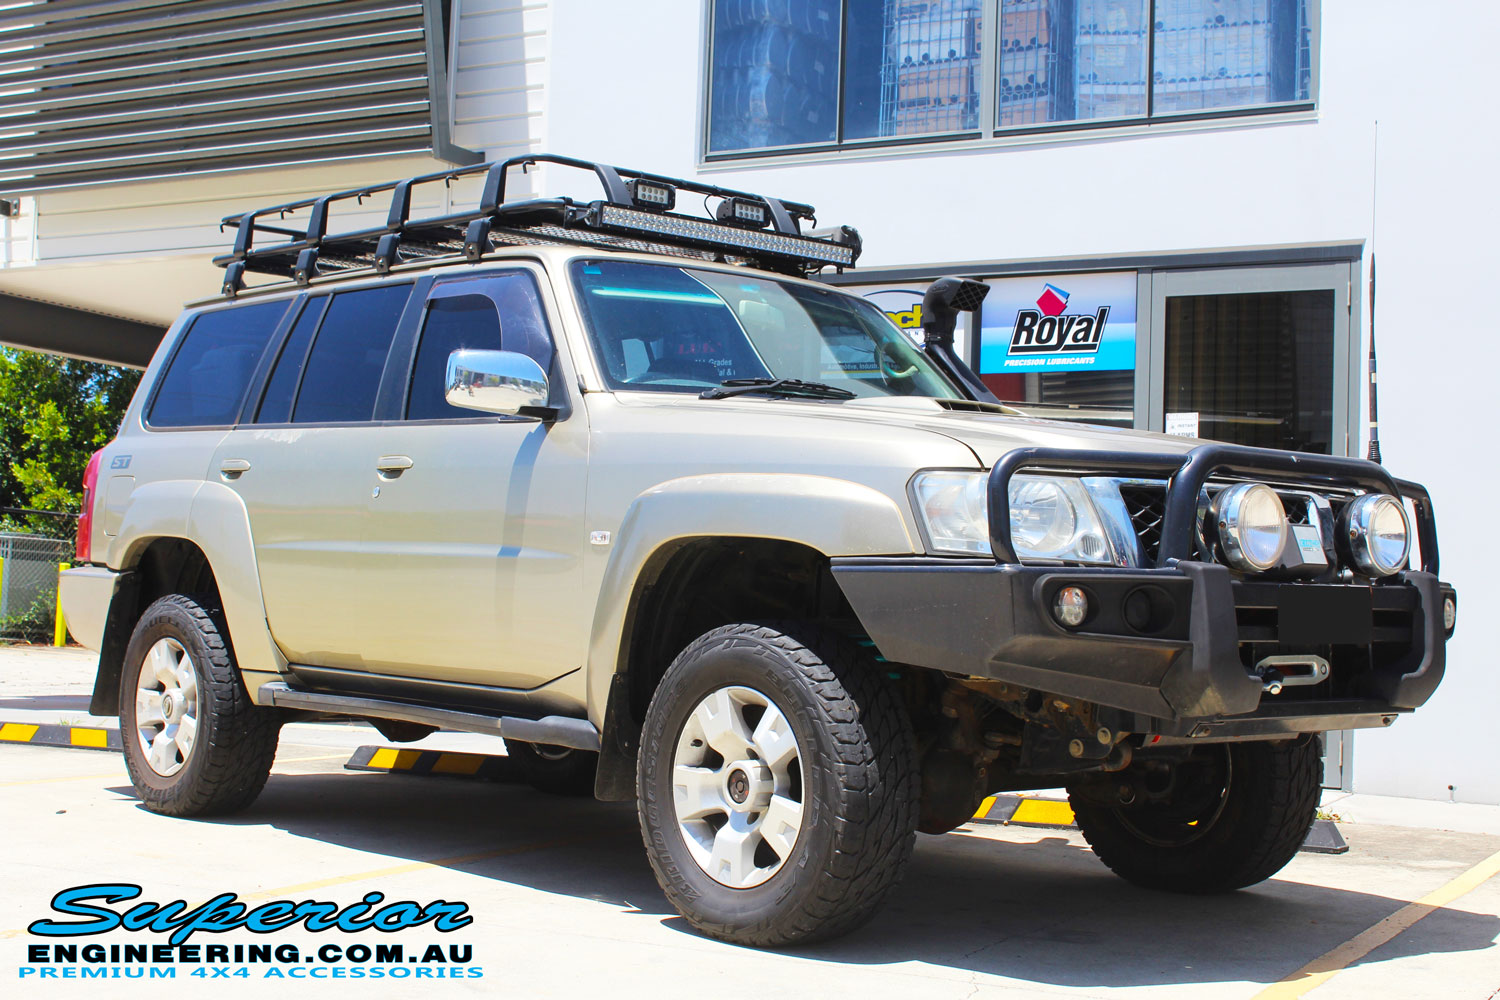 "Right front side view of a Gold Nissan GU Patrol Wagon after fitting a 2"" inch lift with Dobinsons Coil Springs & Fox Shocks"